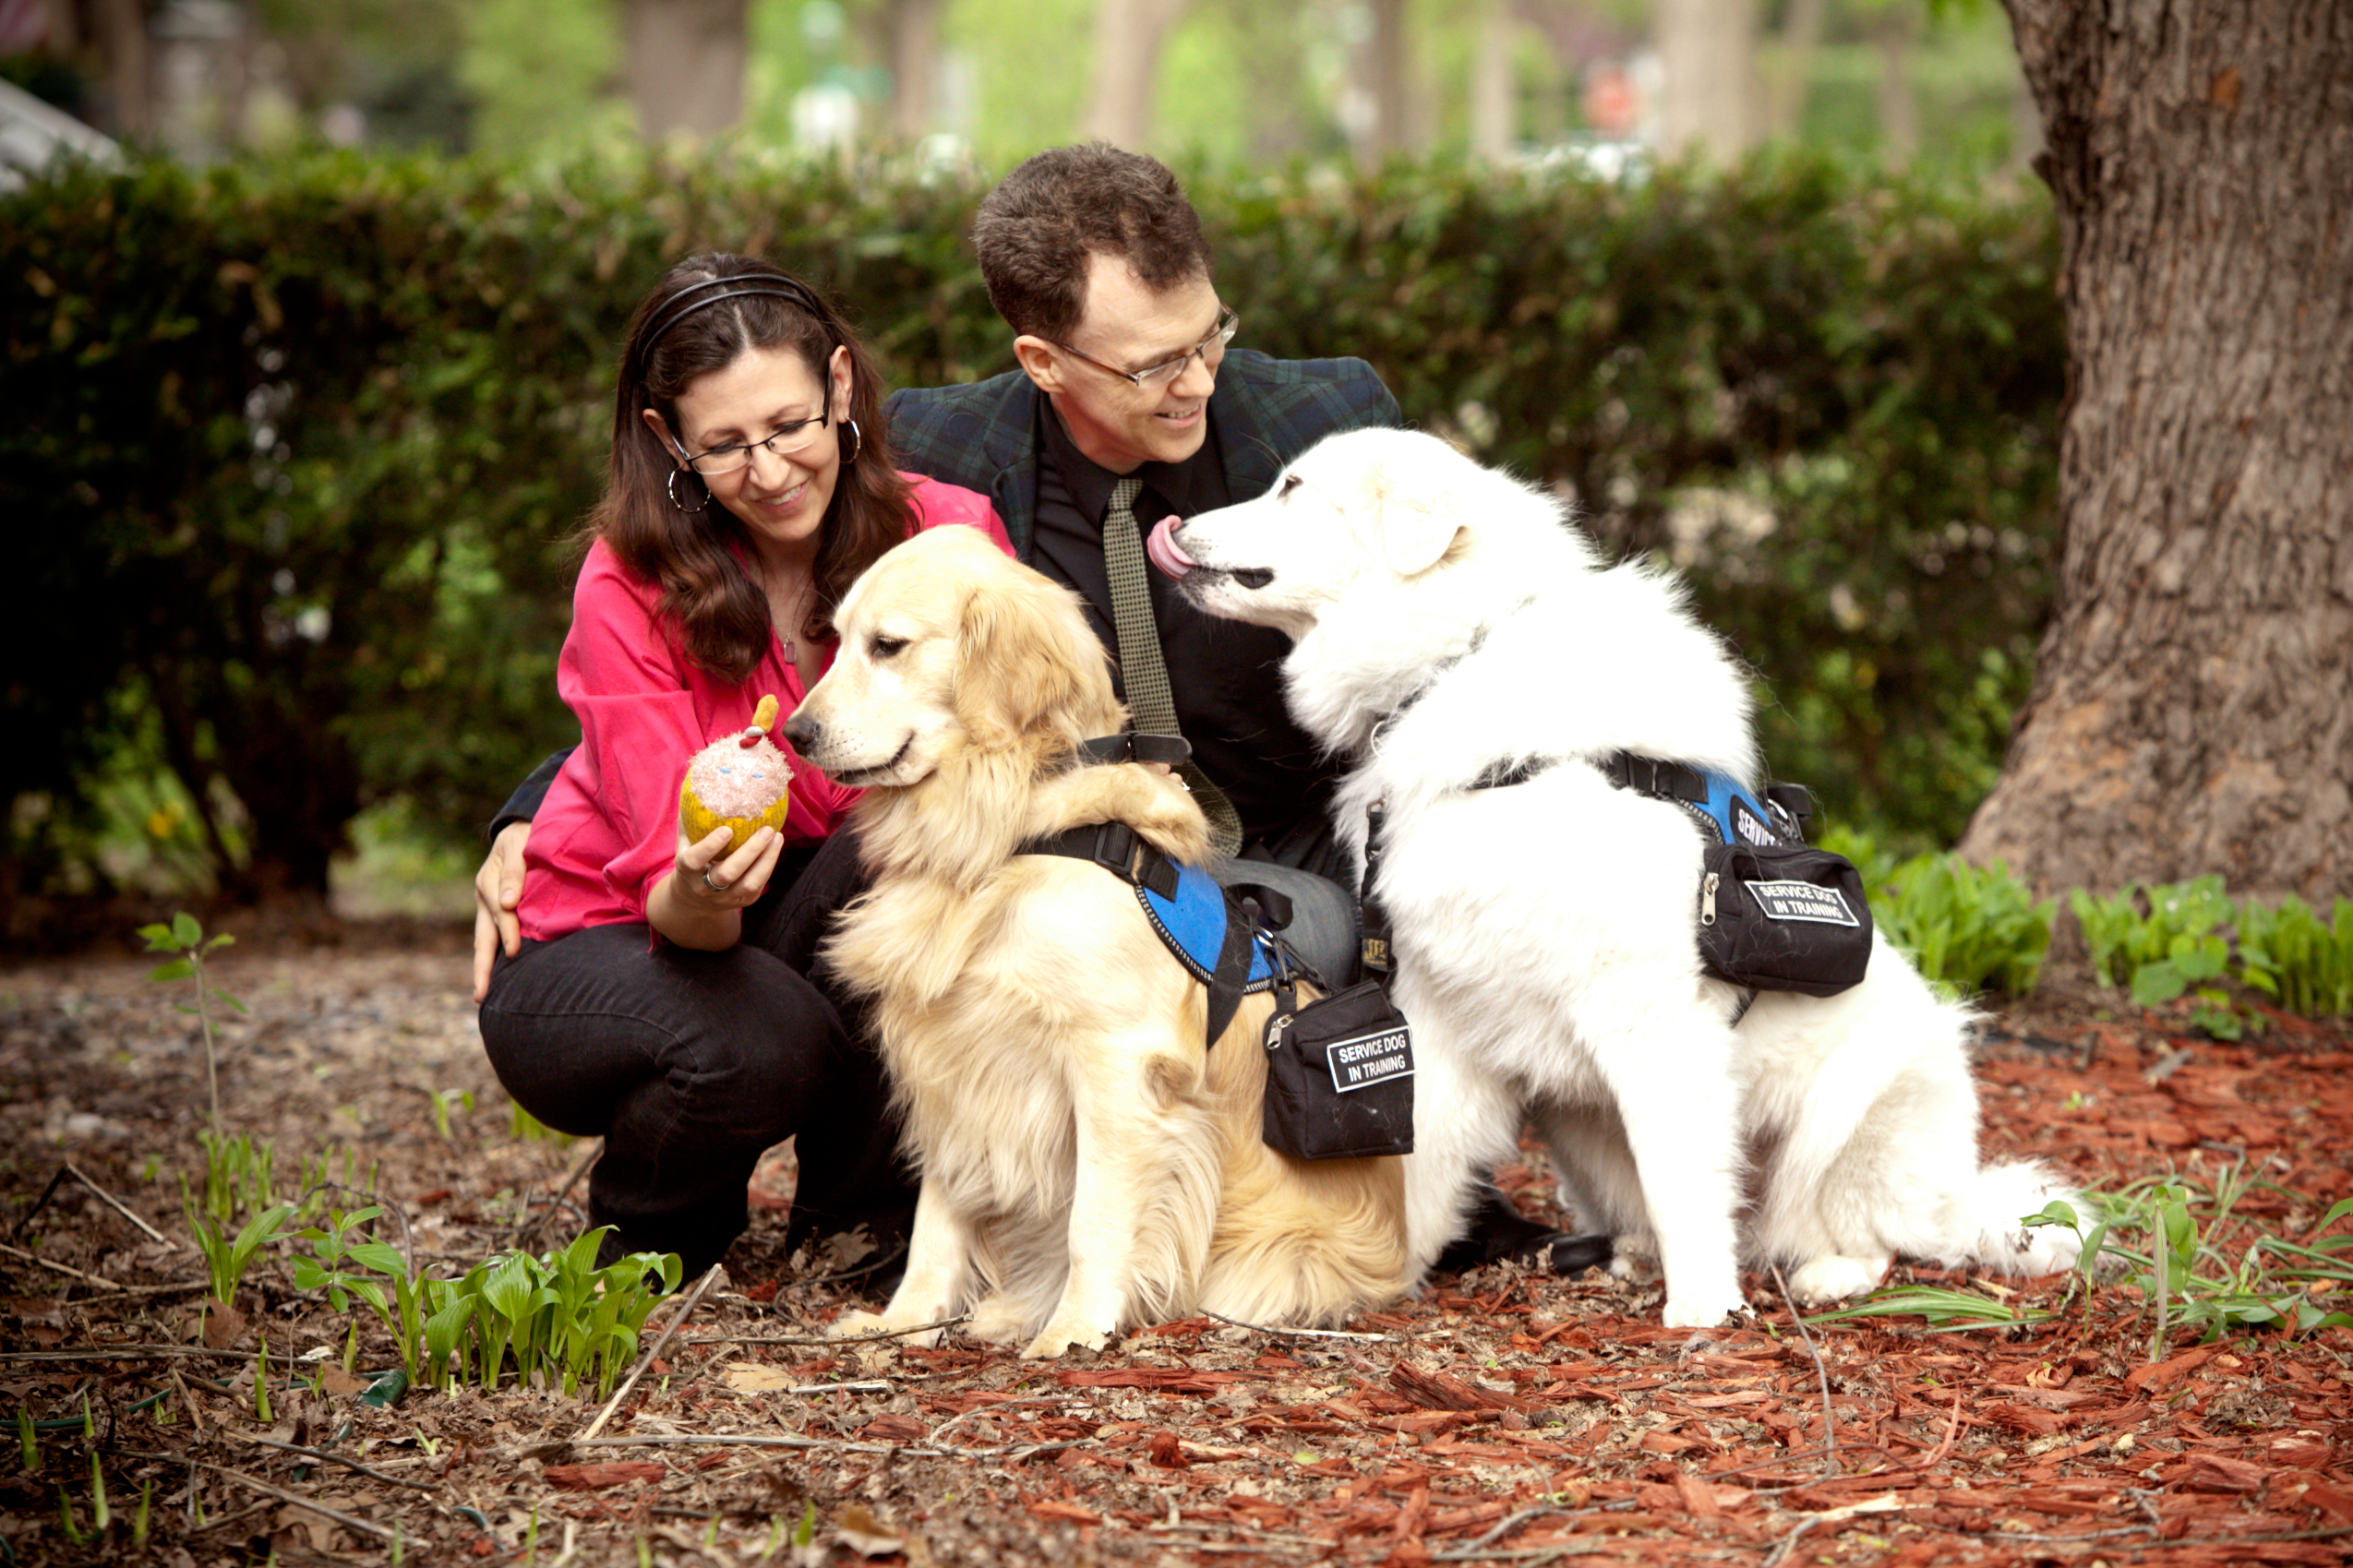 Tom and Julie Coleman of Pawsitivity Service Dogs